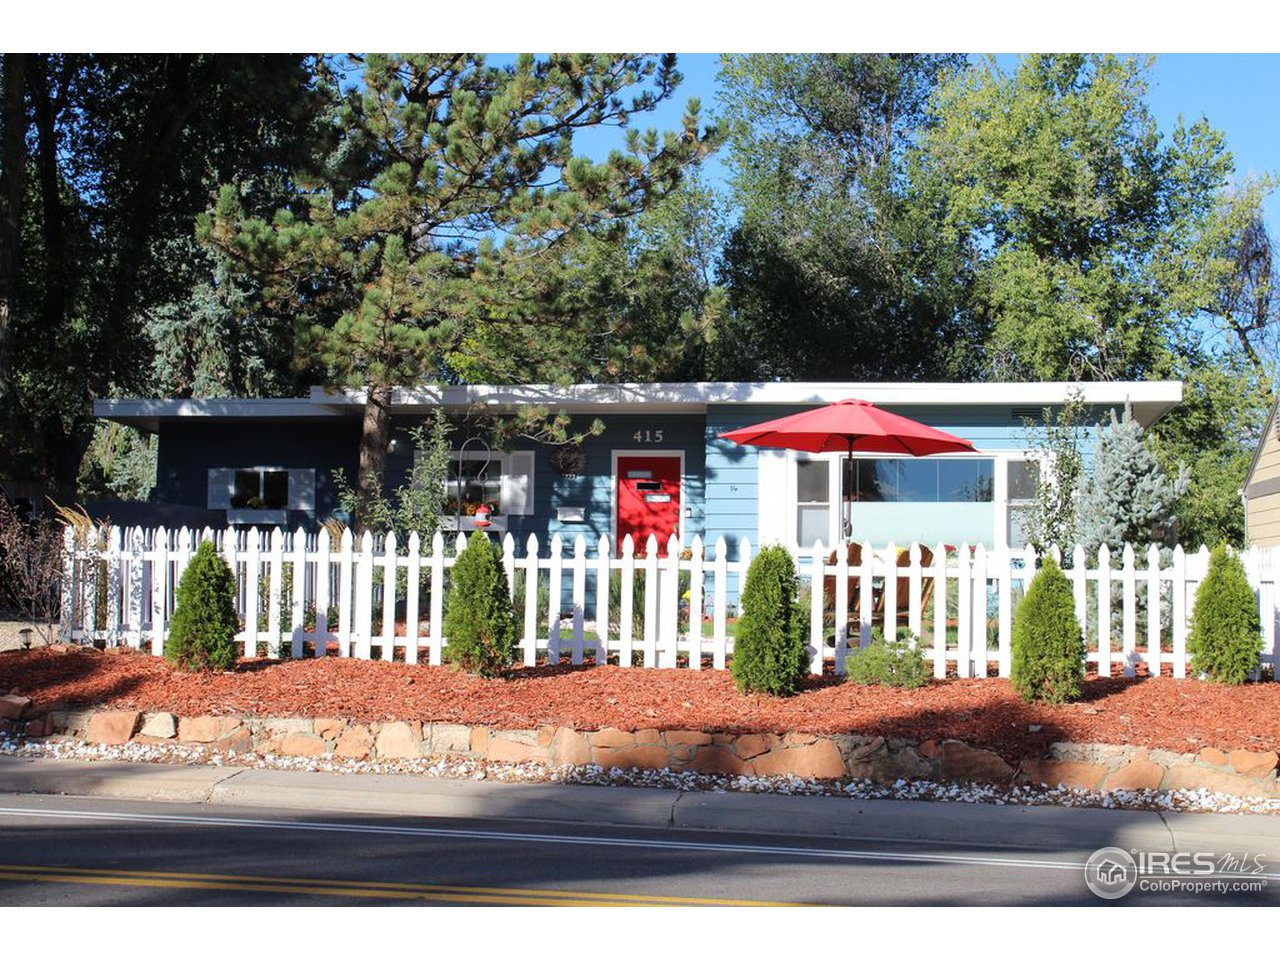 415 N Shields St, Fort Collins CO 80521